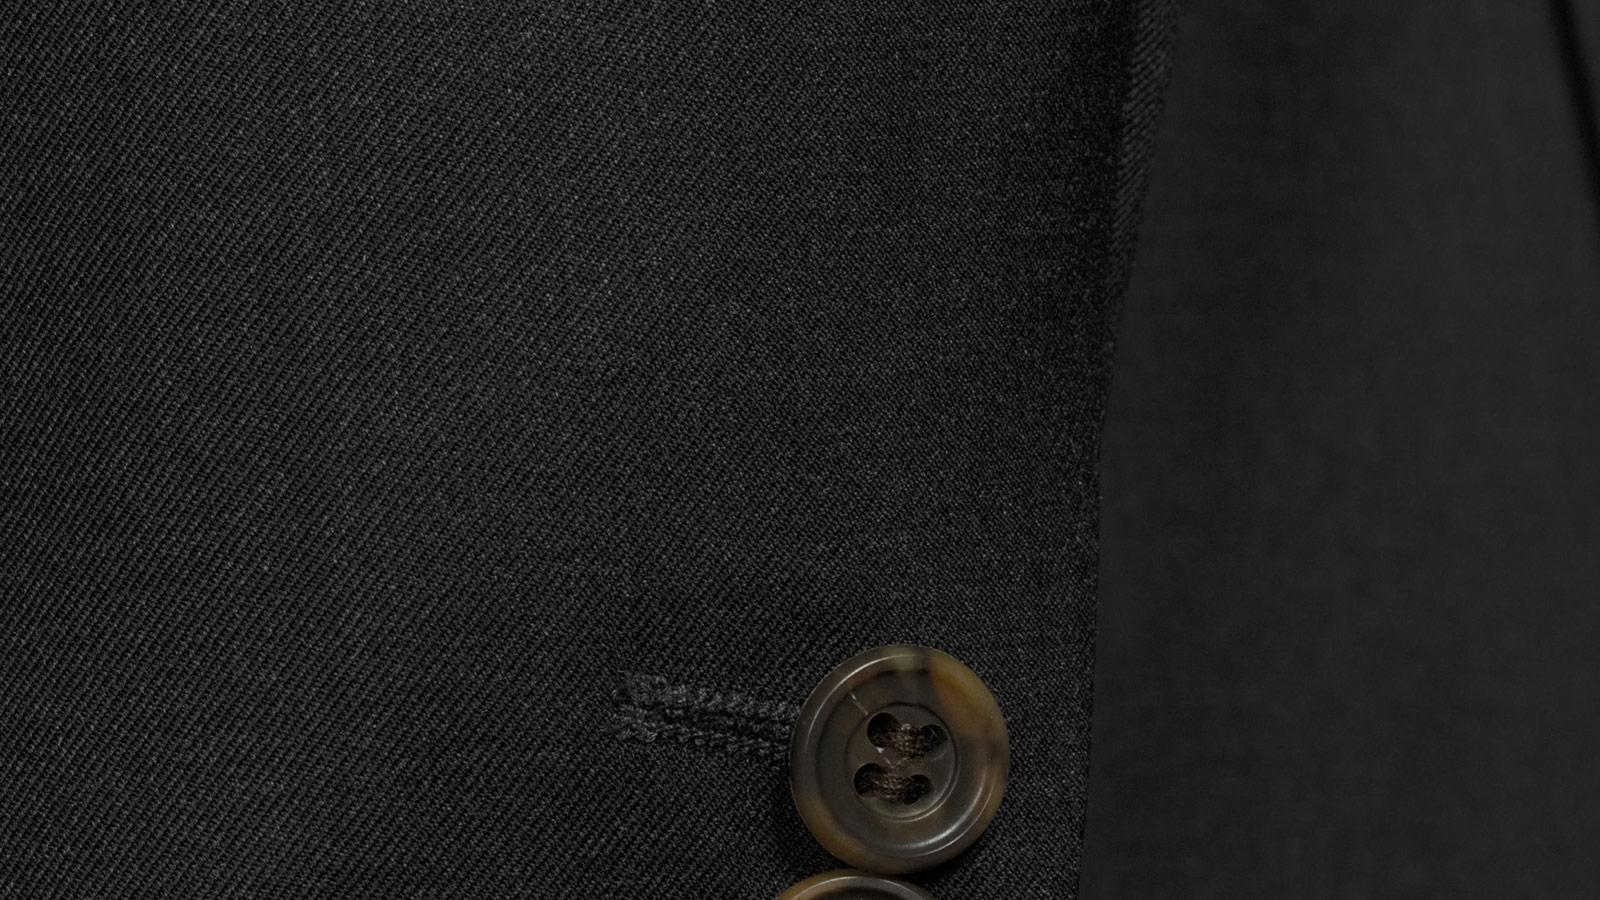 Vendetta Premium Charcoal Suit - slider image 1